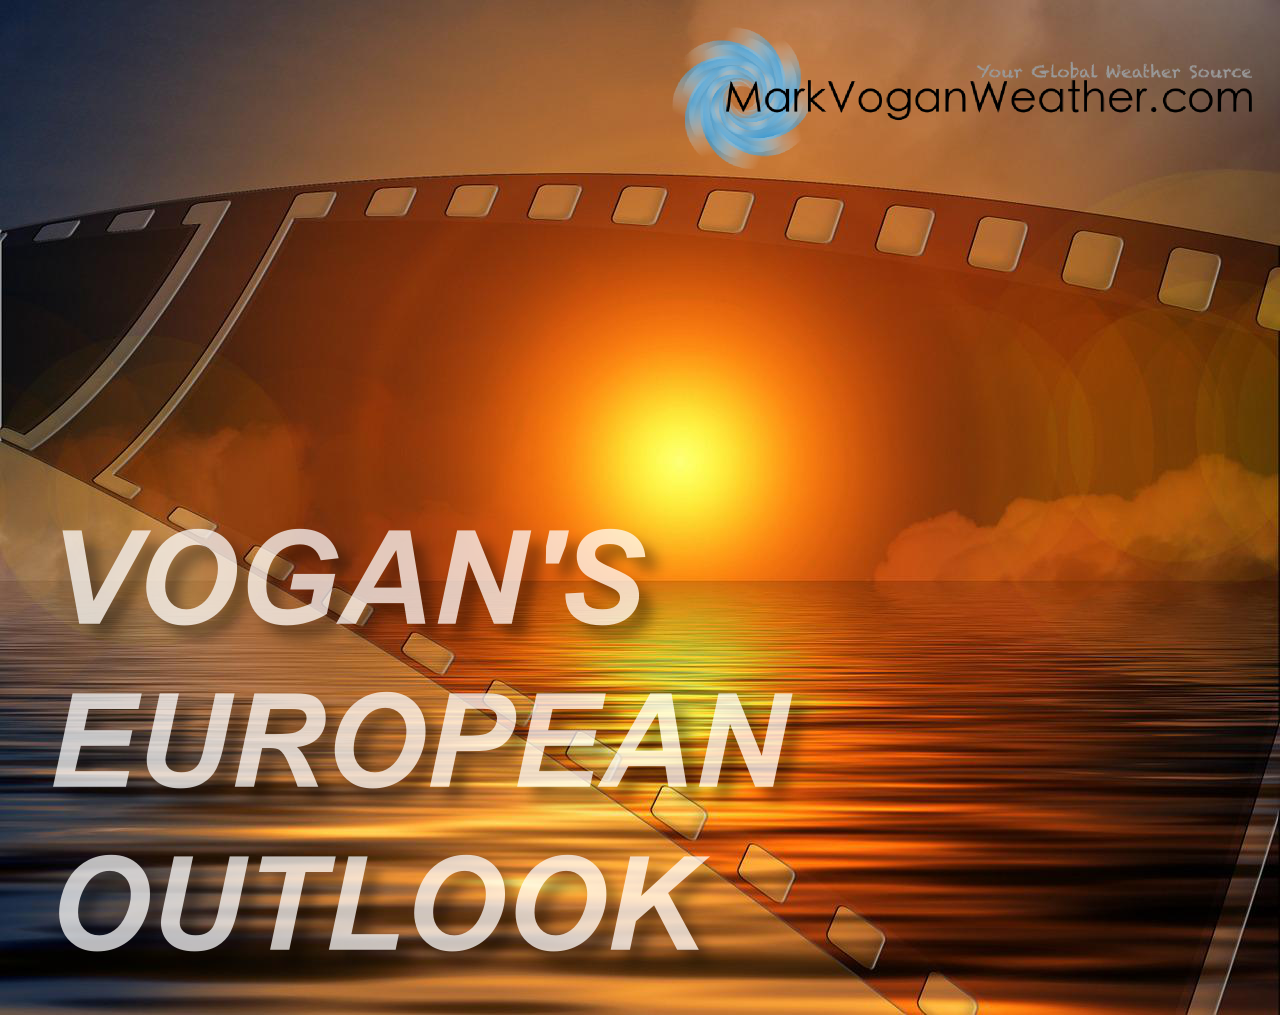 MON 10 MAR: VOGAN'S EUROPEAN OUTLOOK